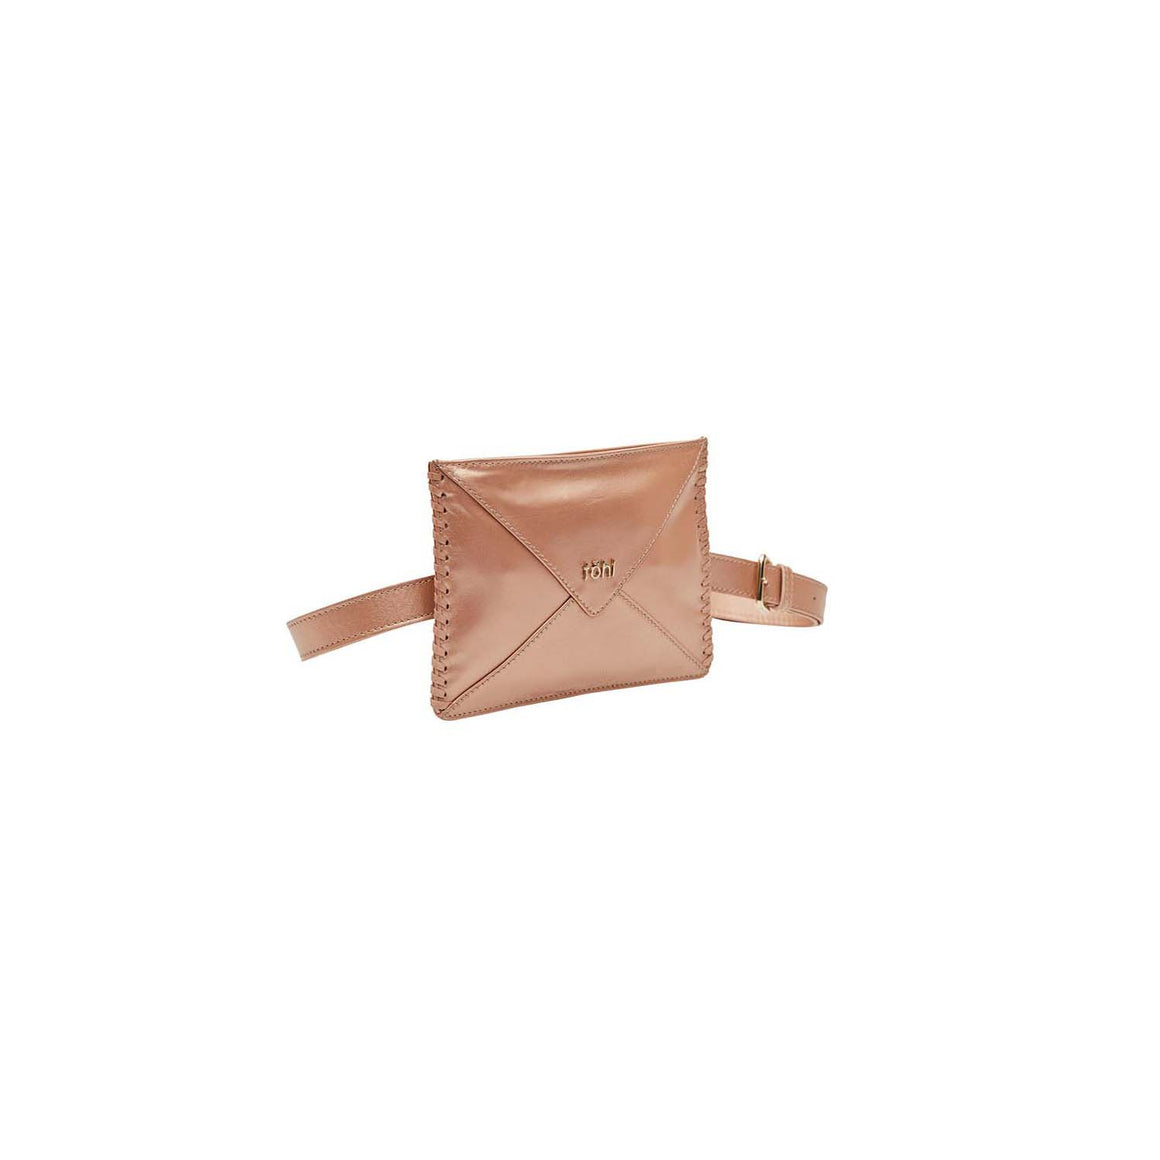 WP 0002 - TOHL JUNIPER WOMEN'S WAIST POUCH - METALLIC ROSE GOLD